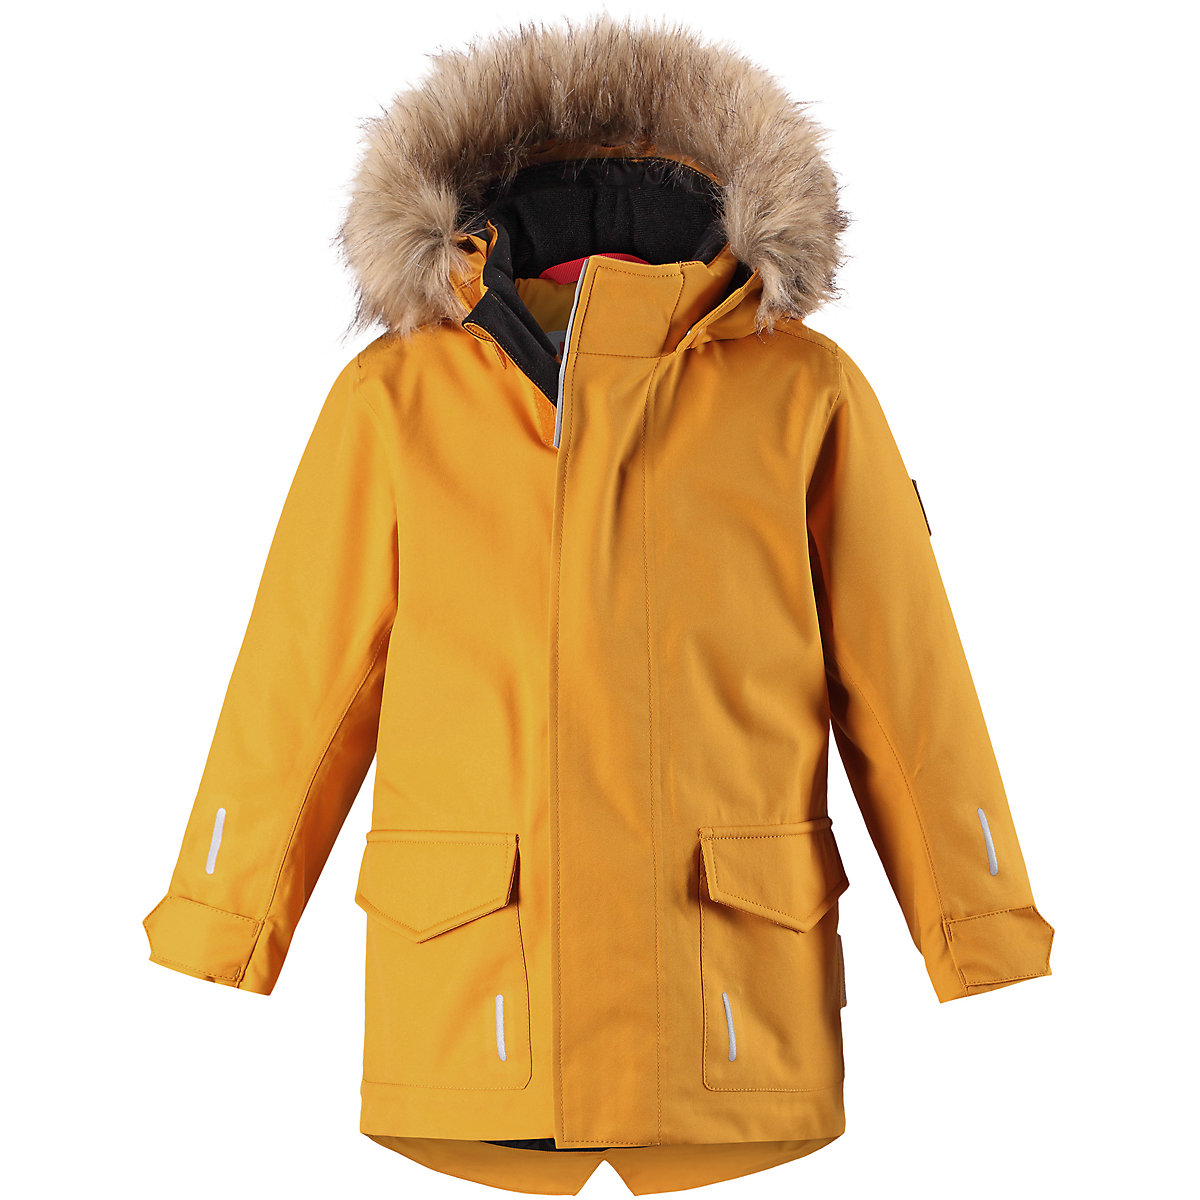 REIMA Jackets & Coats 8689309 for boys and girls baby clothing winter warm boy girl jacket Polyester icebear 2018 fashion winter jacket men s brand clothing jacket high quality thick warm men winter coat down jacket 17md811